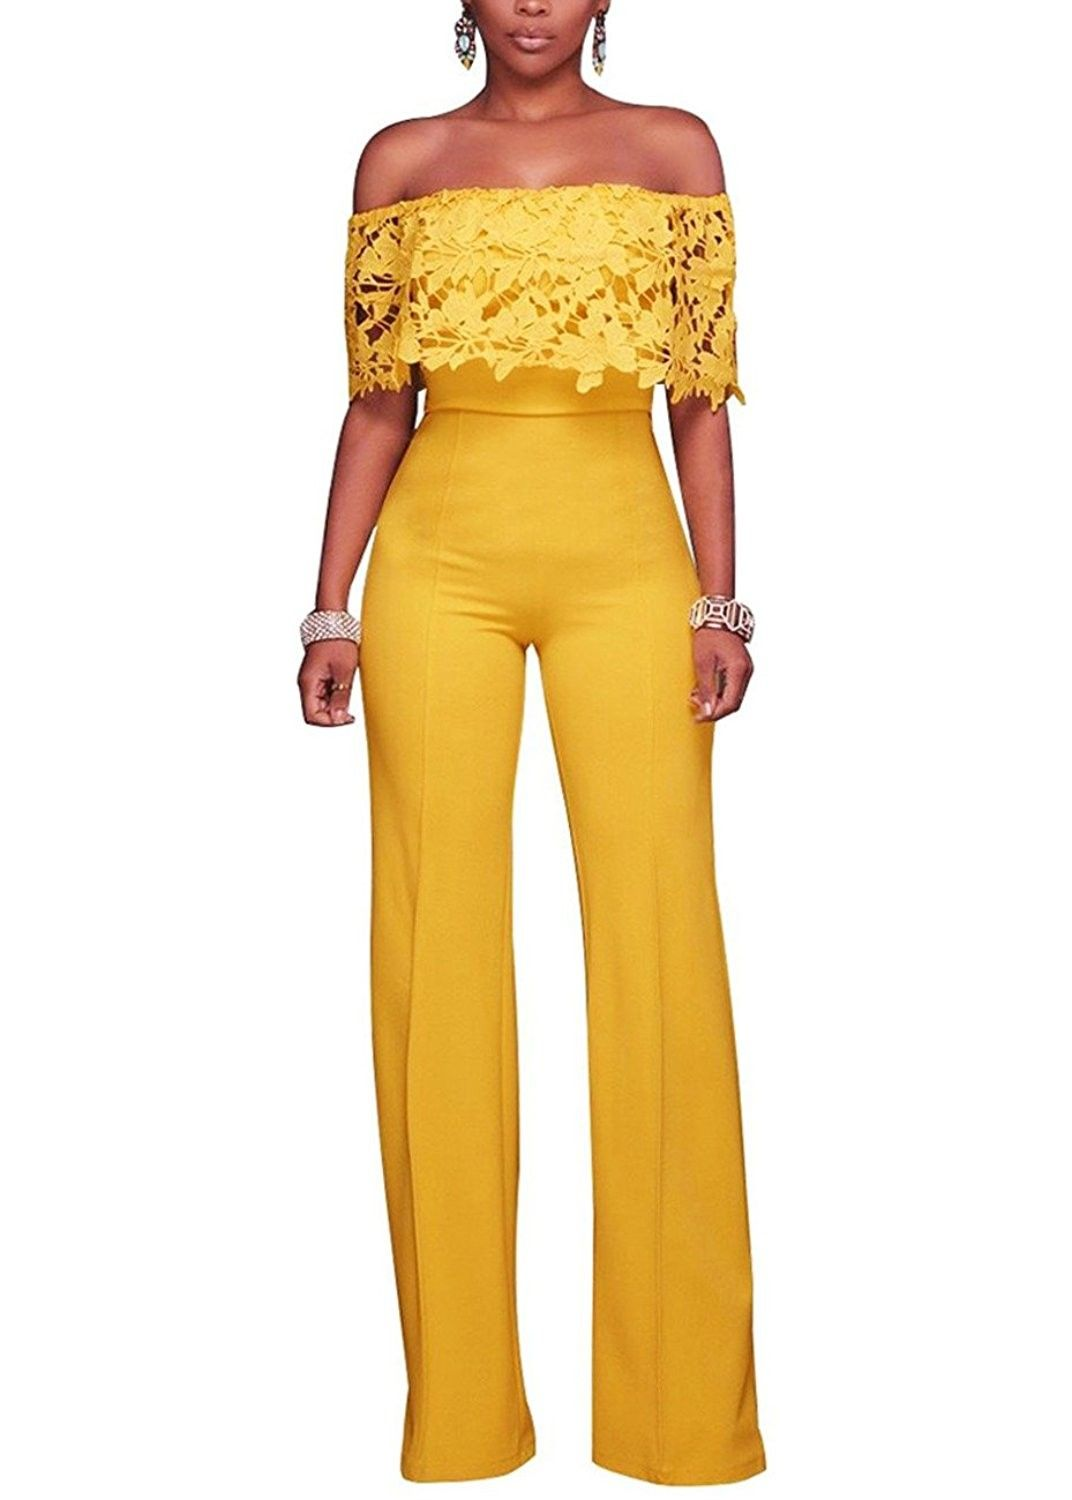 Women's Clothing Beautiful Sexy Women Casual Jumpsuits Cold Shoulder Ruffle Bodysuit Flare Sleeve Romper Wide Leg Playsuits Patchwork Long Overalls Female Fancy Colours